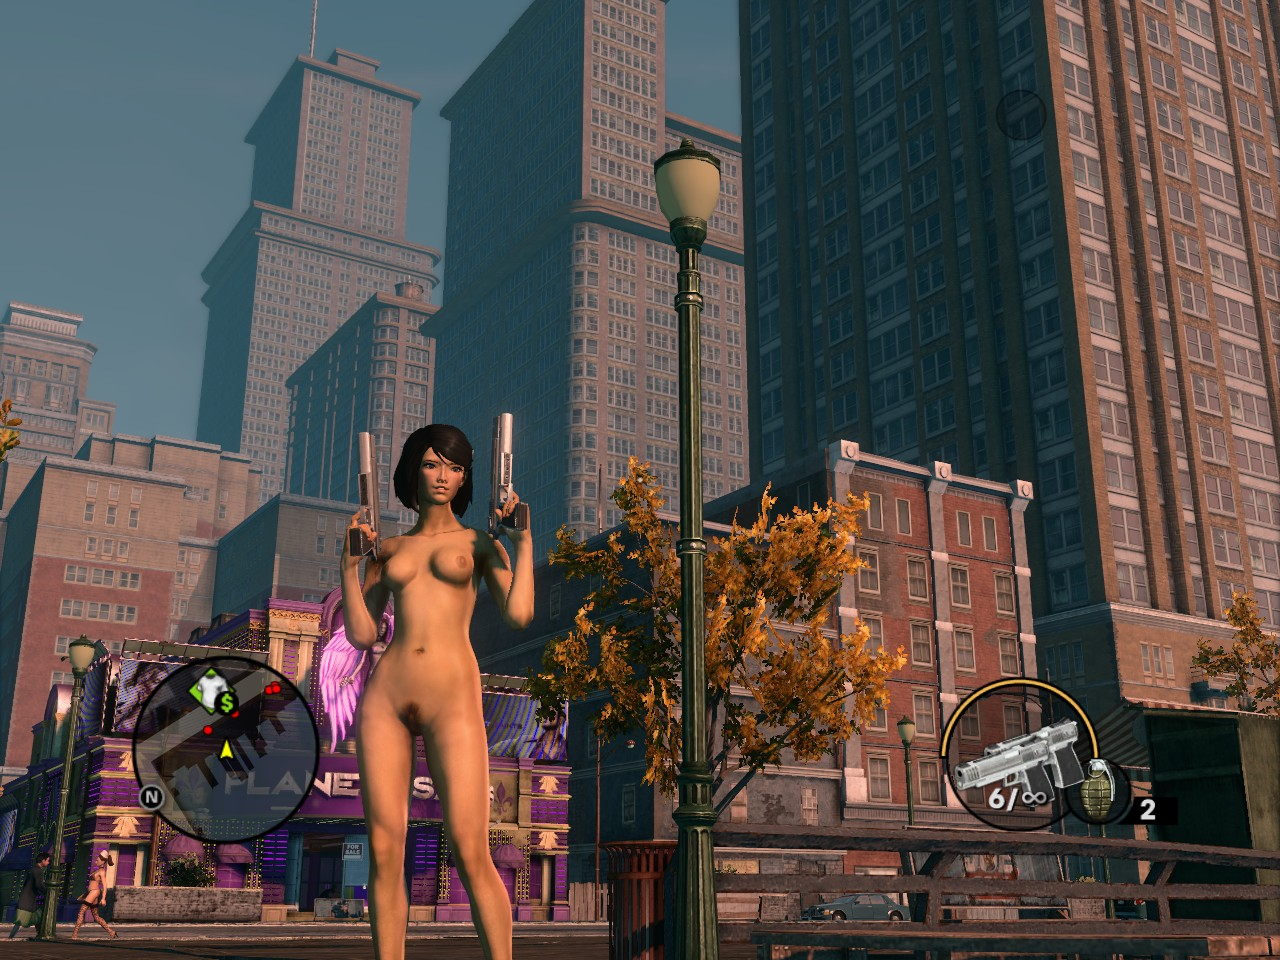 Saints row 3 porn patch porno clip